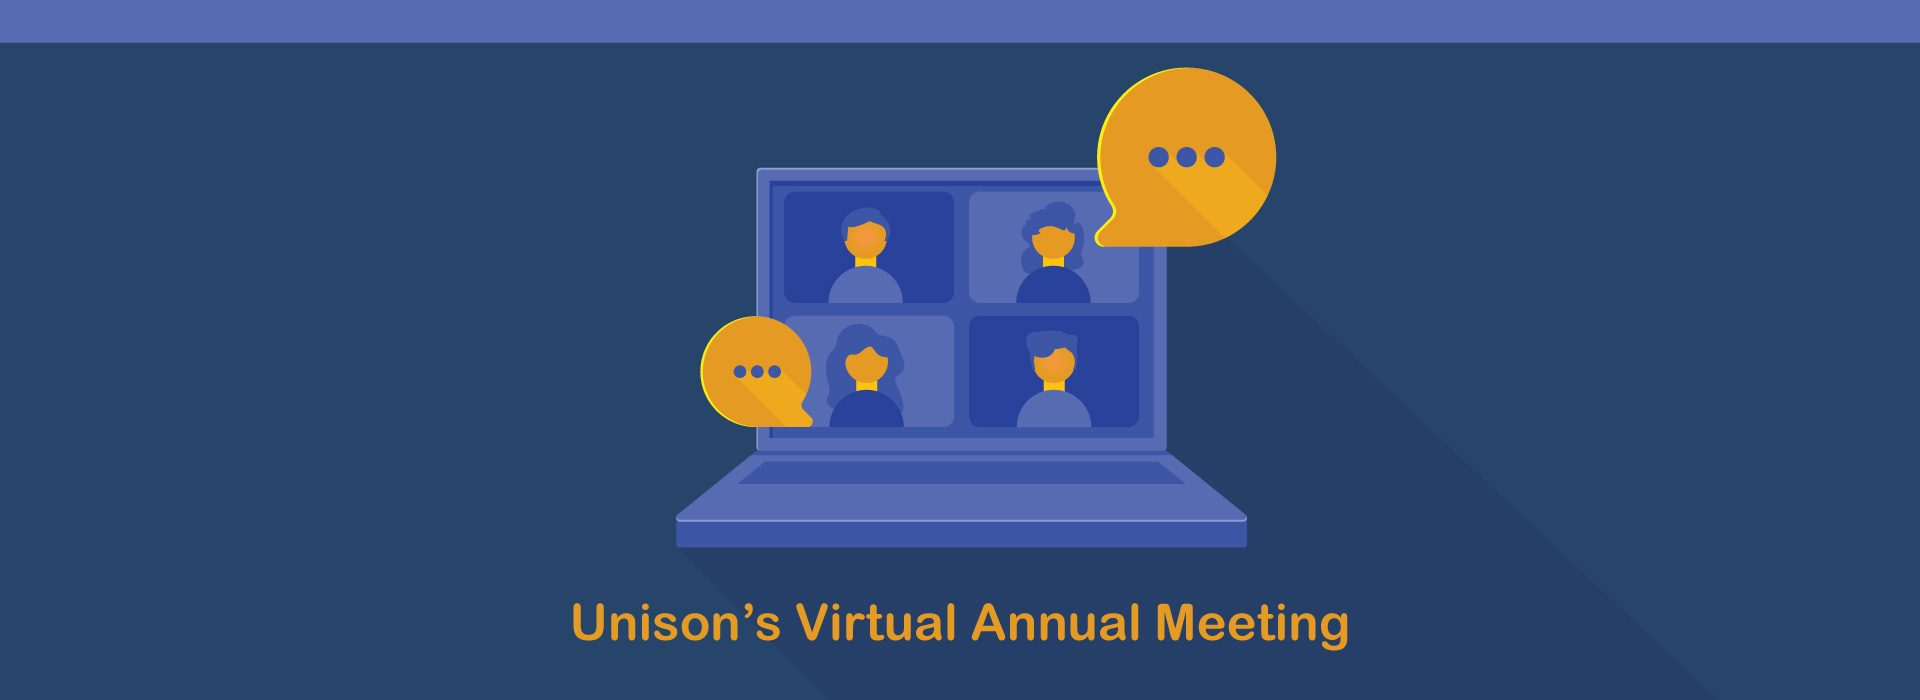 Annual Meeting Open Laptop